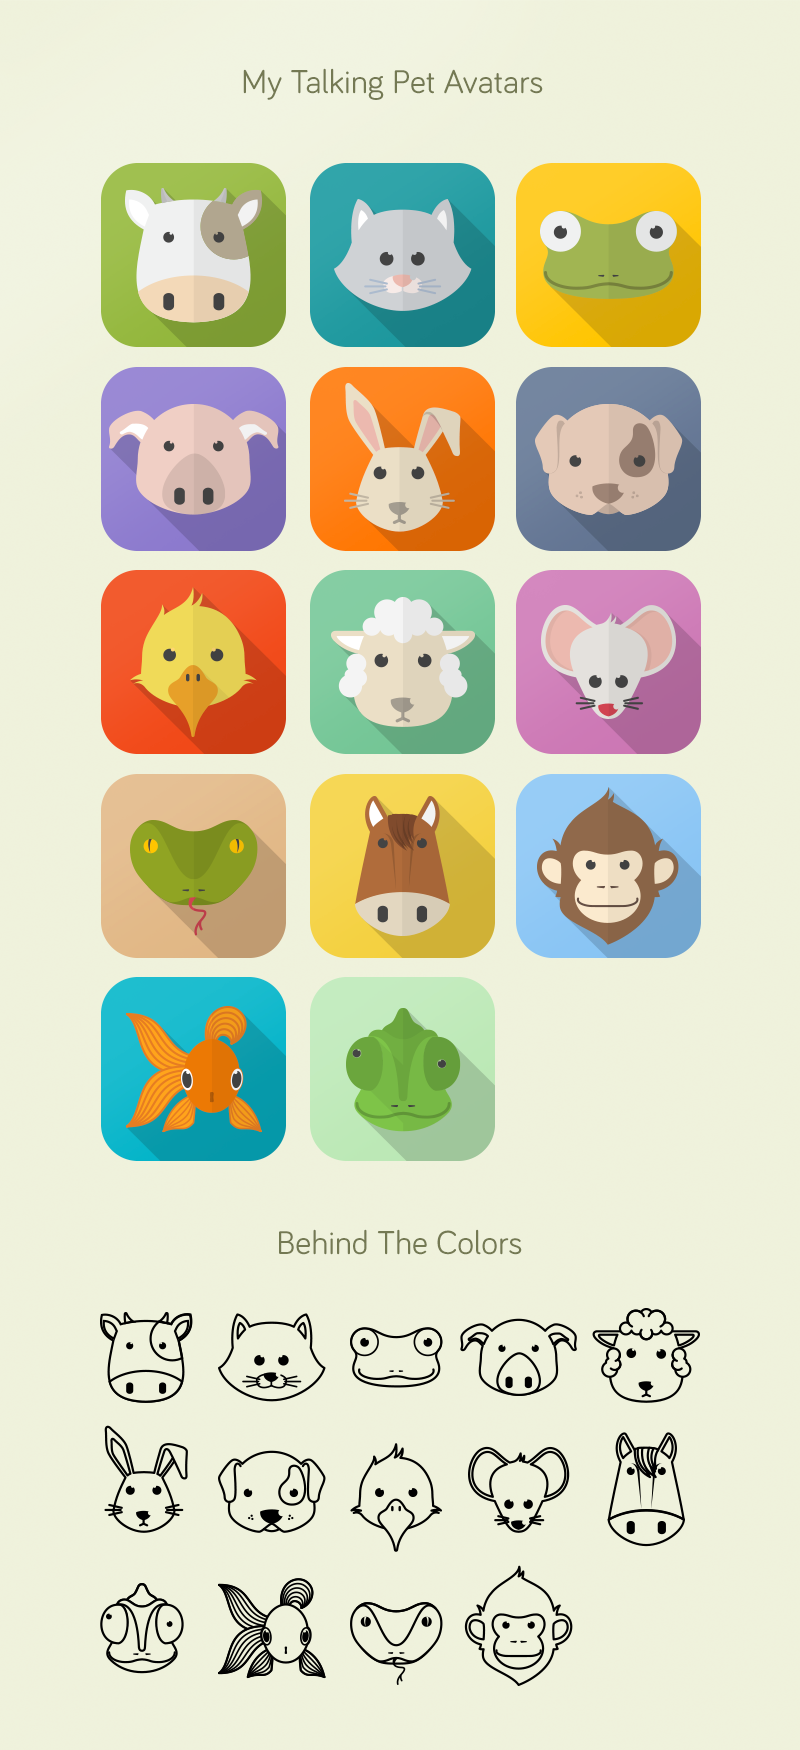 My Talking Pet Avatars/Icons by NunoDias